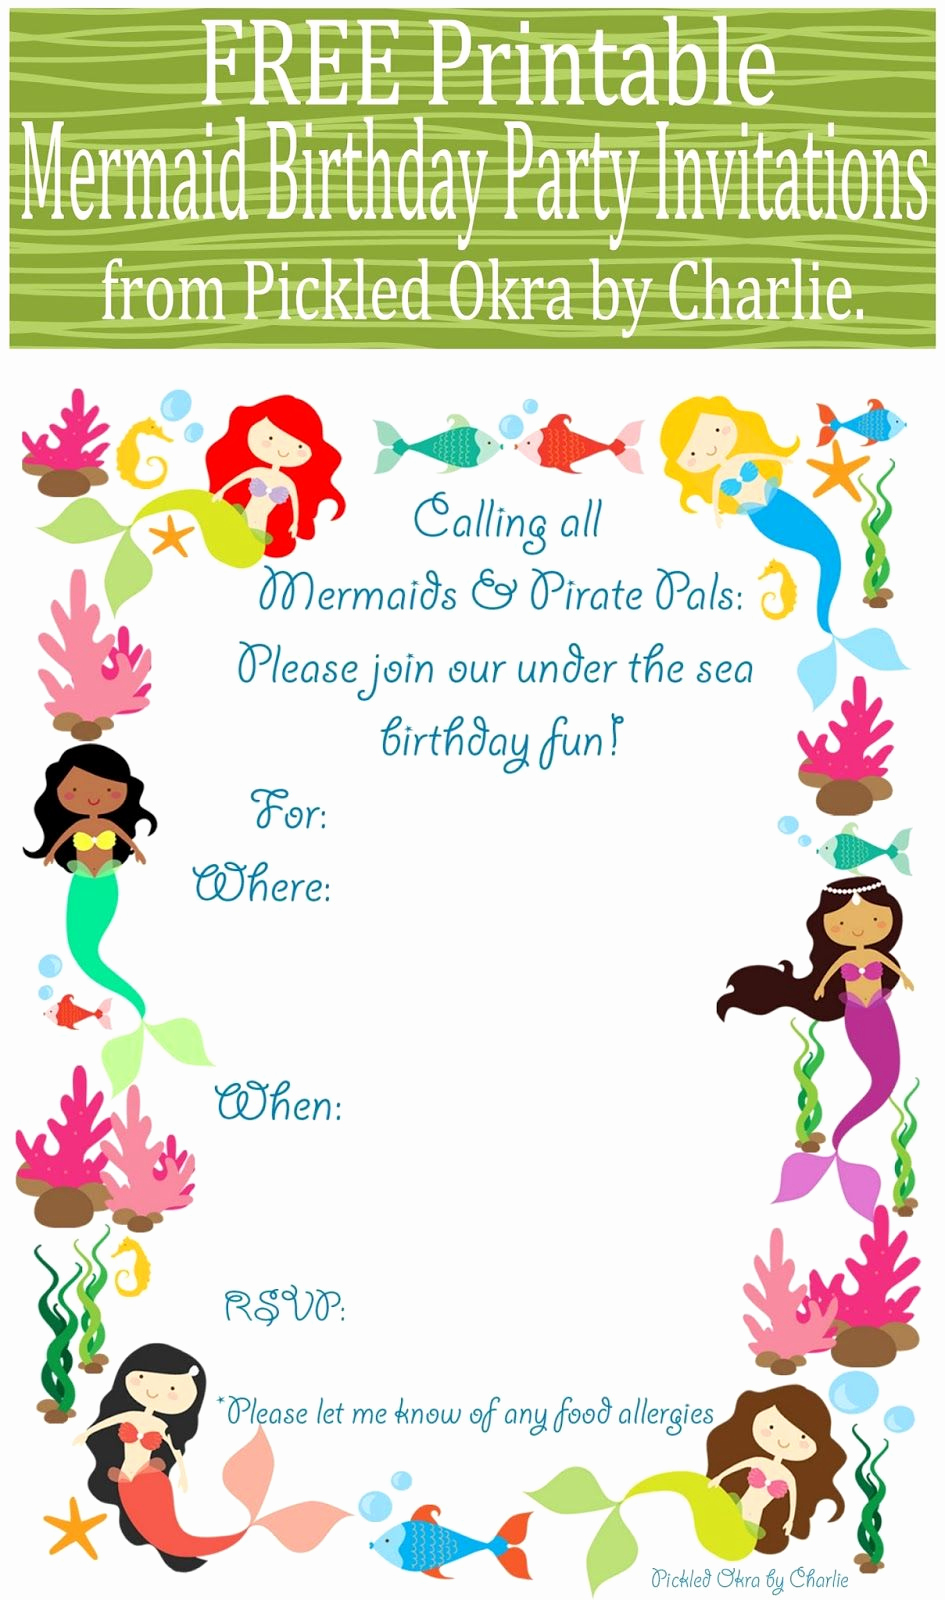 Mermaid Invitation Template Free Fresh Pickled Okra by Charlie Mermaid Bithday Party Invitations